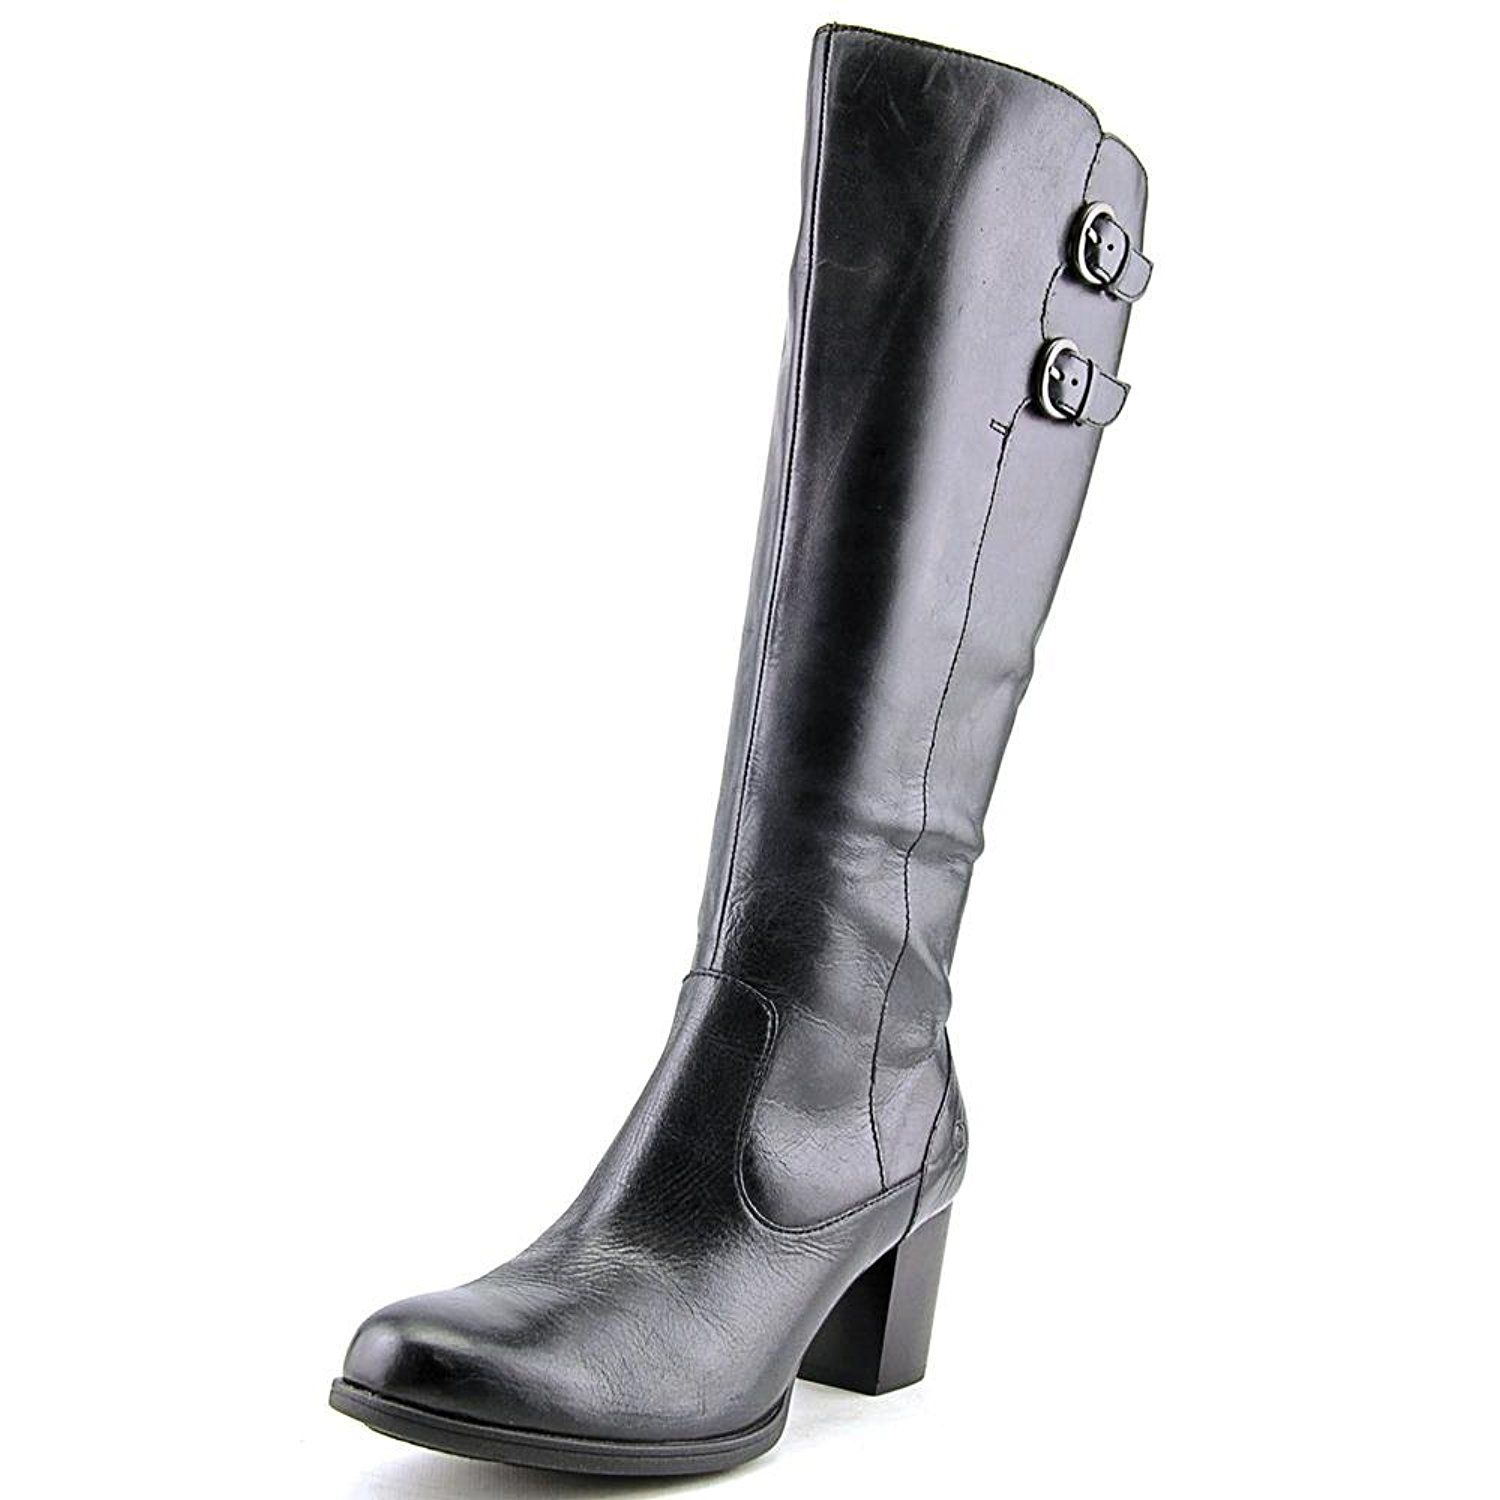 3af3d7f0a6ce6 Born Women's Mim Wide Calf Boot * This is an Amazon Affiliate link ...